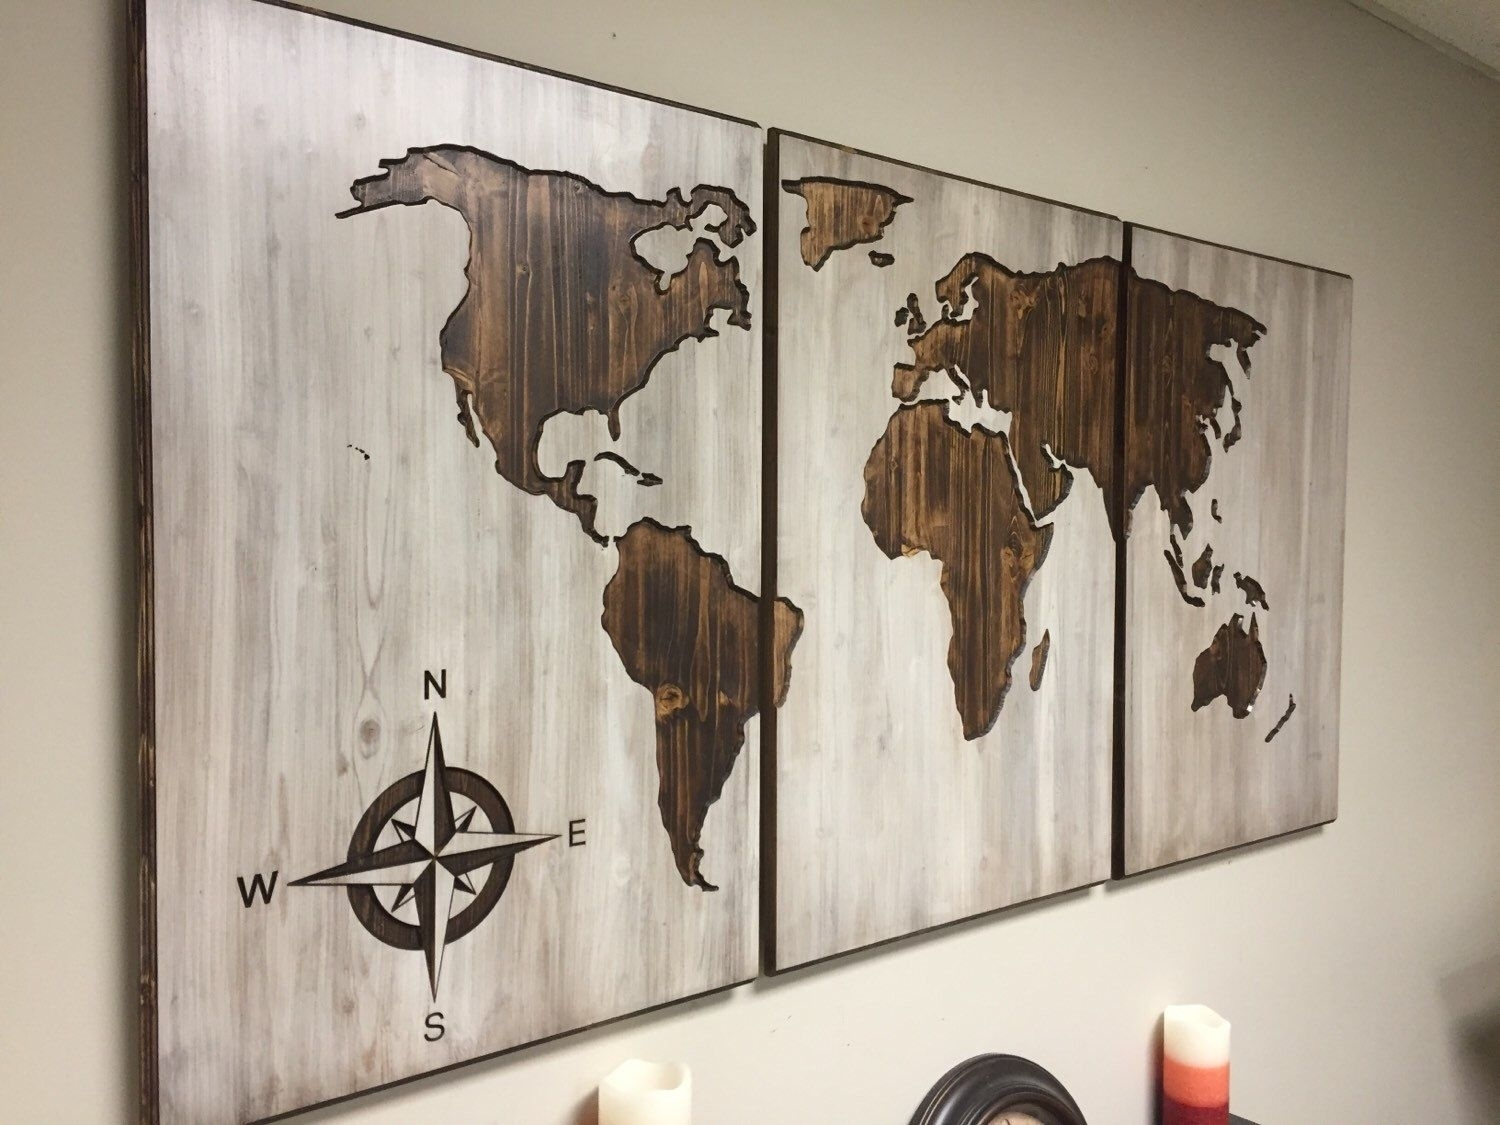 Wood World Map Wall Art, Carved 3 Panel Home Decor, Wood Wall Art With World Map For Wall Art (Photo 3 of 20)